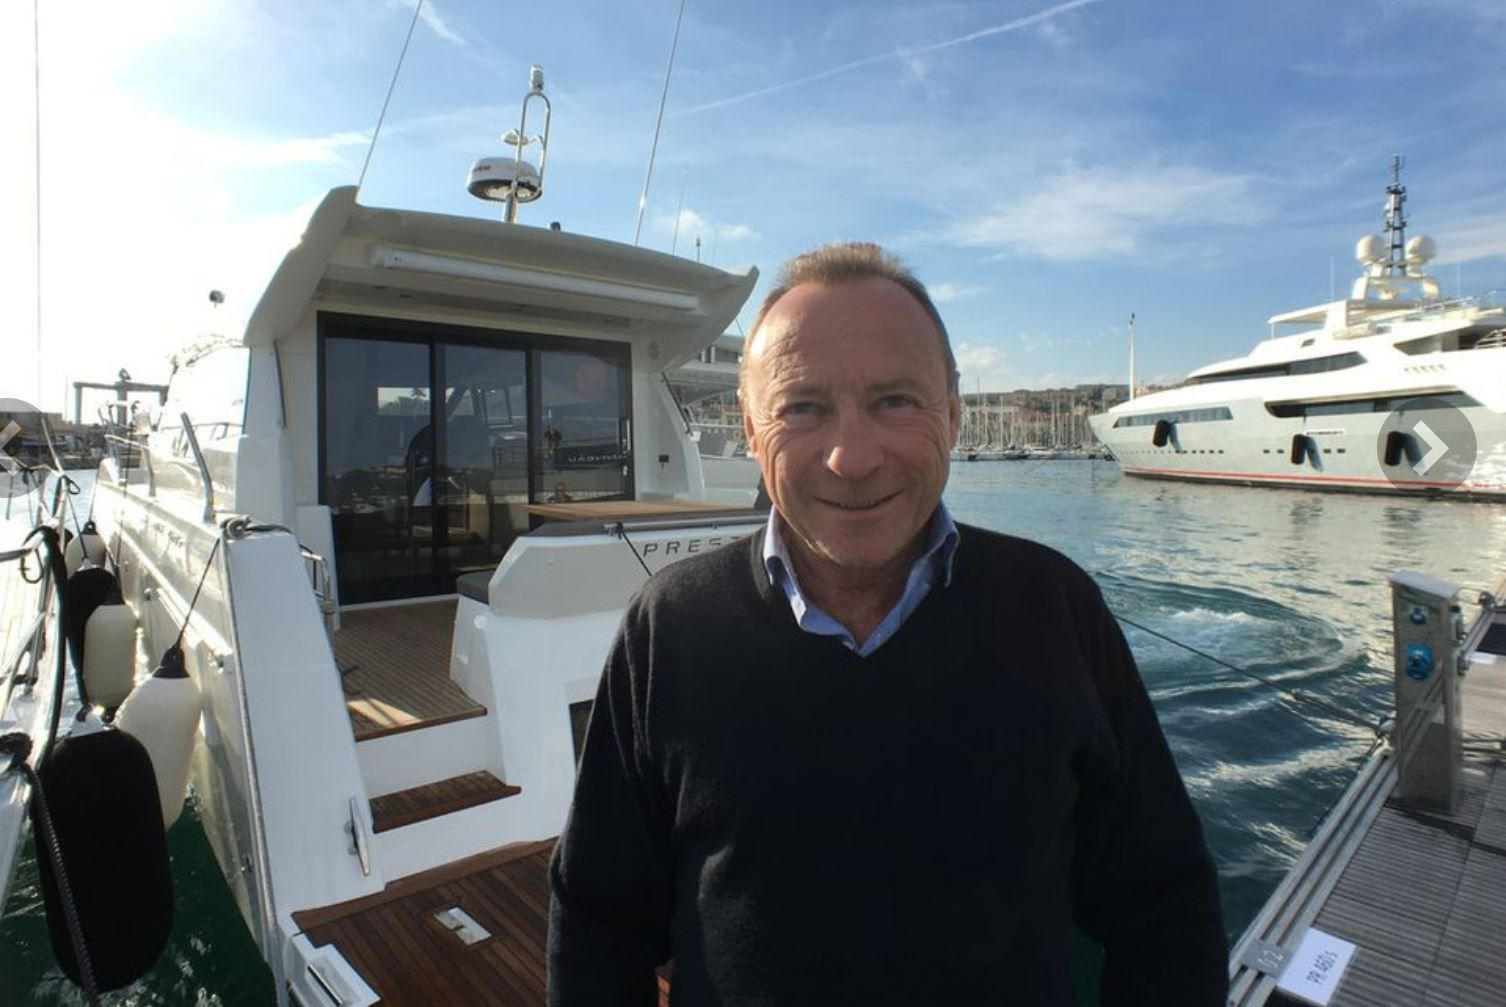 Jean-Paul Chapeleau takes full responsibility for Industrial Operations and Development of the Bénéteau Group's Boat Division